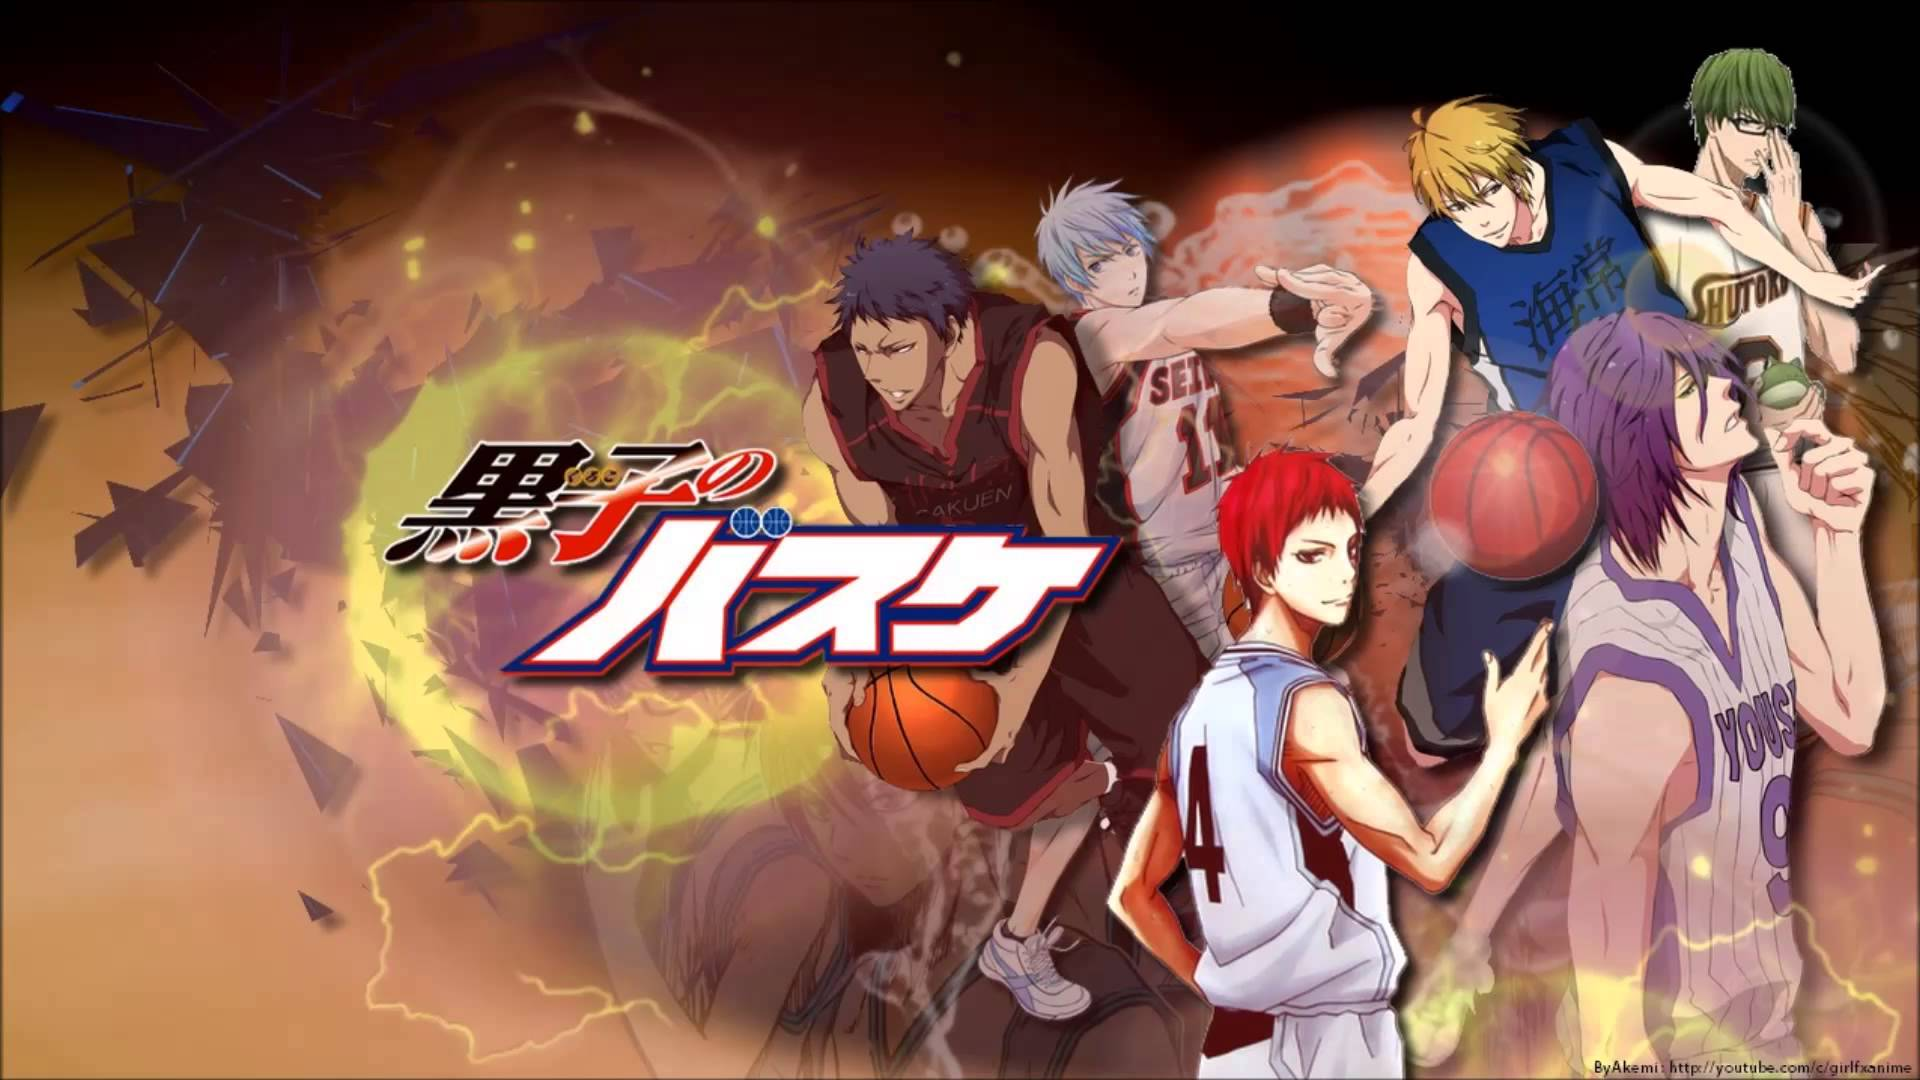 Kuroko no basket hd wallpapers wallpaper cave photo collection kuroko no basket wallpaper 1680x1050 voltagebd Gallery